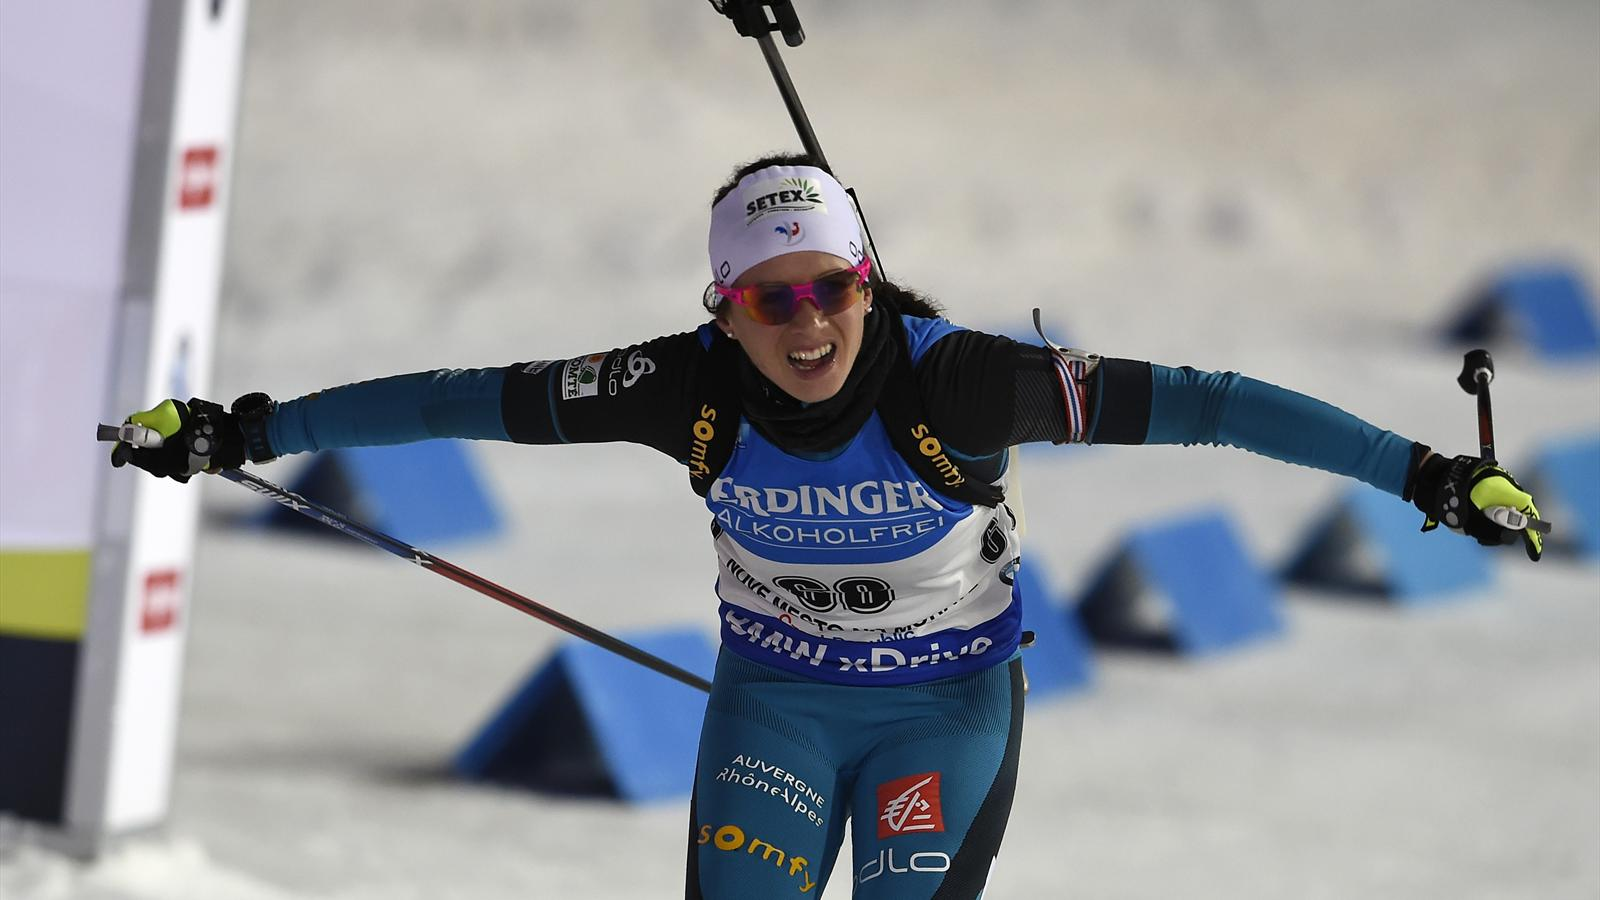 First World Cup win for France's Anais Chevalier - Biathlon - Eurosport